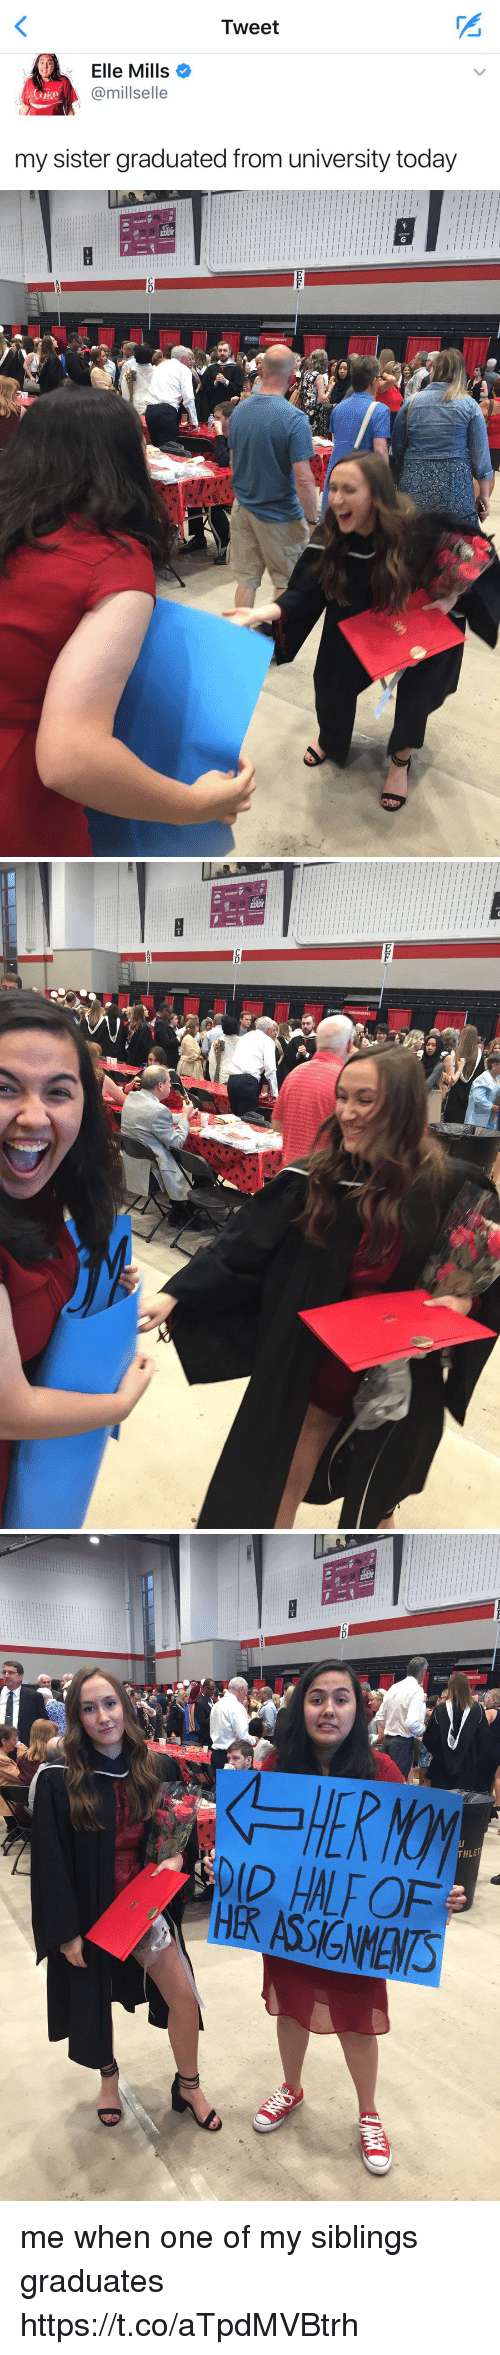 Today, Girl Memes, and Coke: Tweet  Elle Mills  Camillselle  Coke  my sister graduated from university today   i i l III III l III I 1 III III I I I I I I I I  l I II I l I I I l I I I I I I I I l I I I I I I I I I I I I I  I  I I I I   i i i i I I I   ーーーーーー ーーーーー  'st'  SIBWassi xH me when one of my siblings graduates https://t.co/aTpdMVBtrh